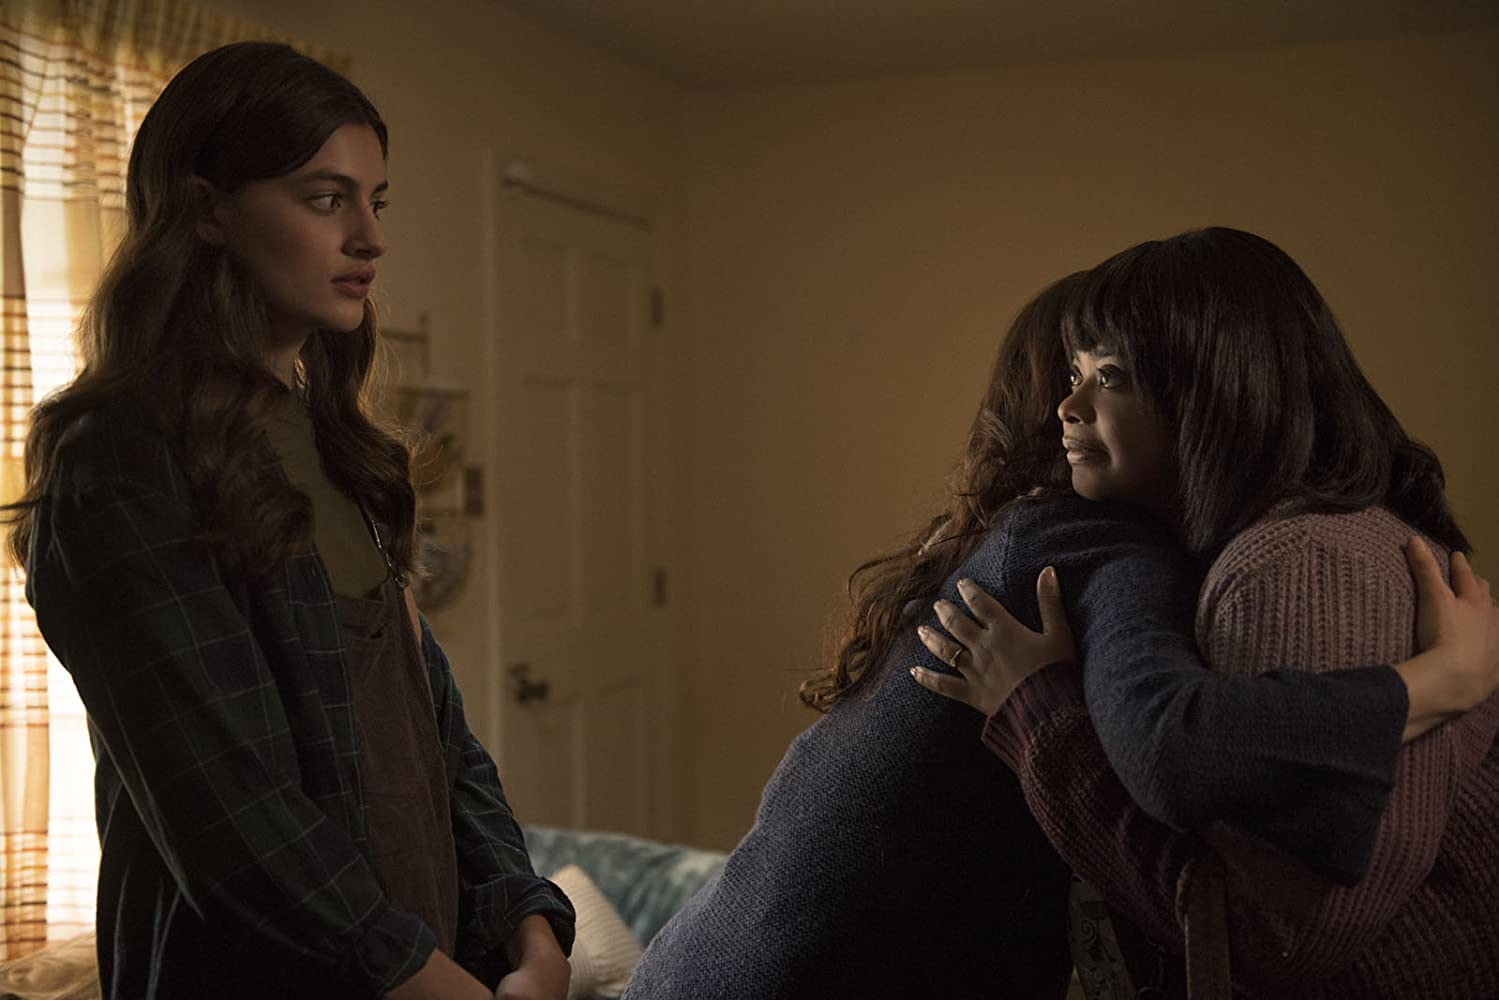 Juliette Lewis, Octavia Spencer, and Diana Silvers in Ma (2019)